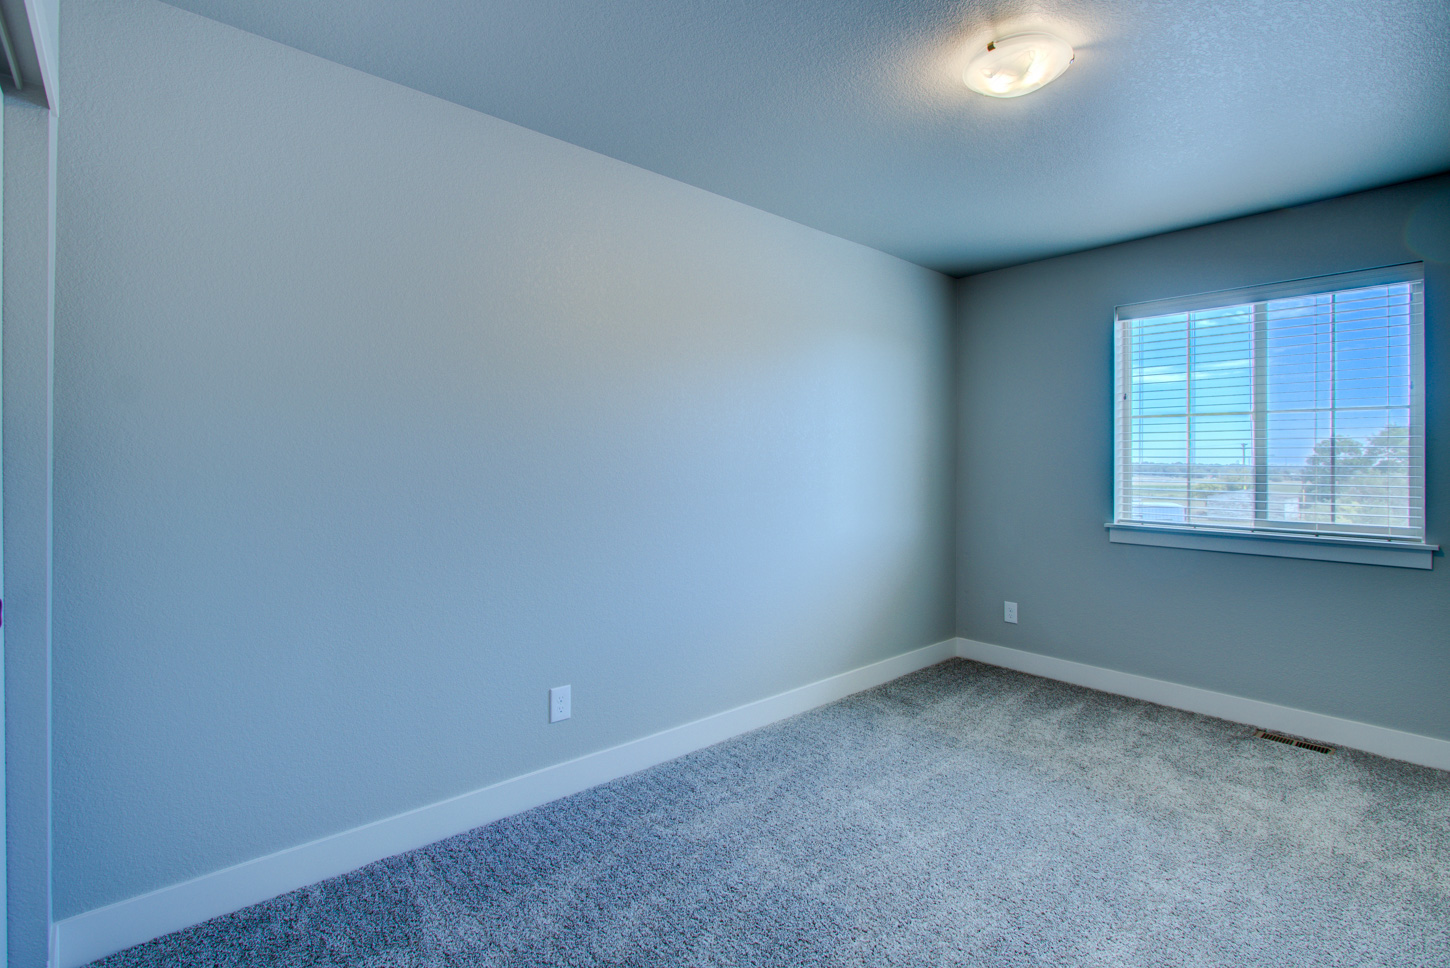 23_115_20anders_20ct_loveland_bedroom_202_new_20home_20for_20sale